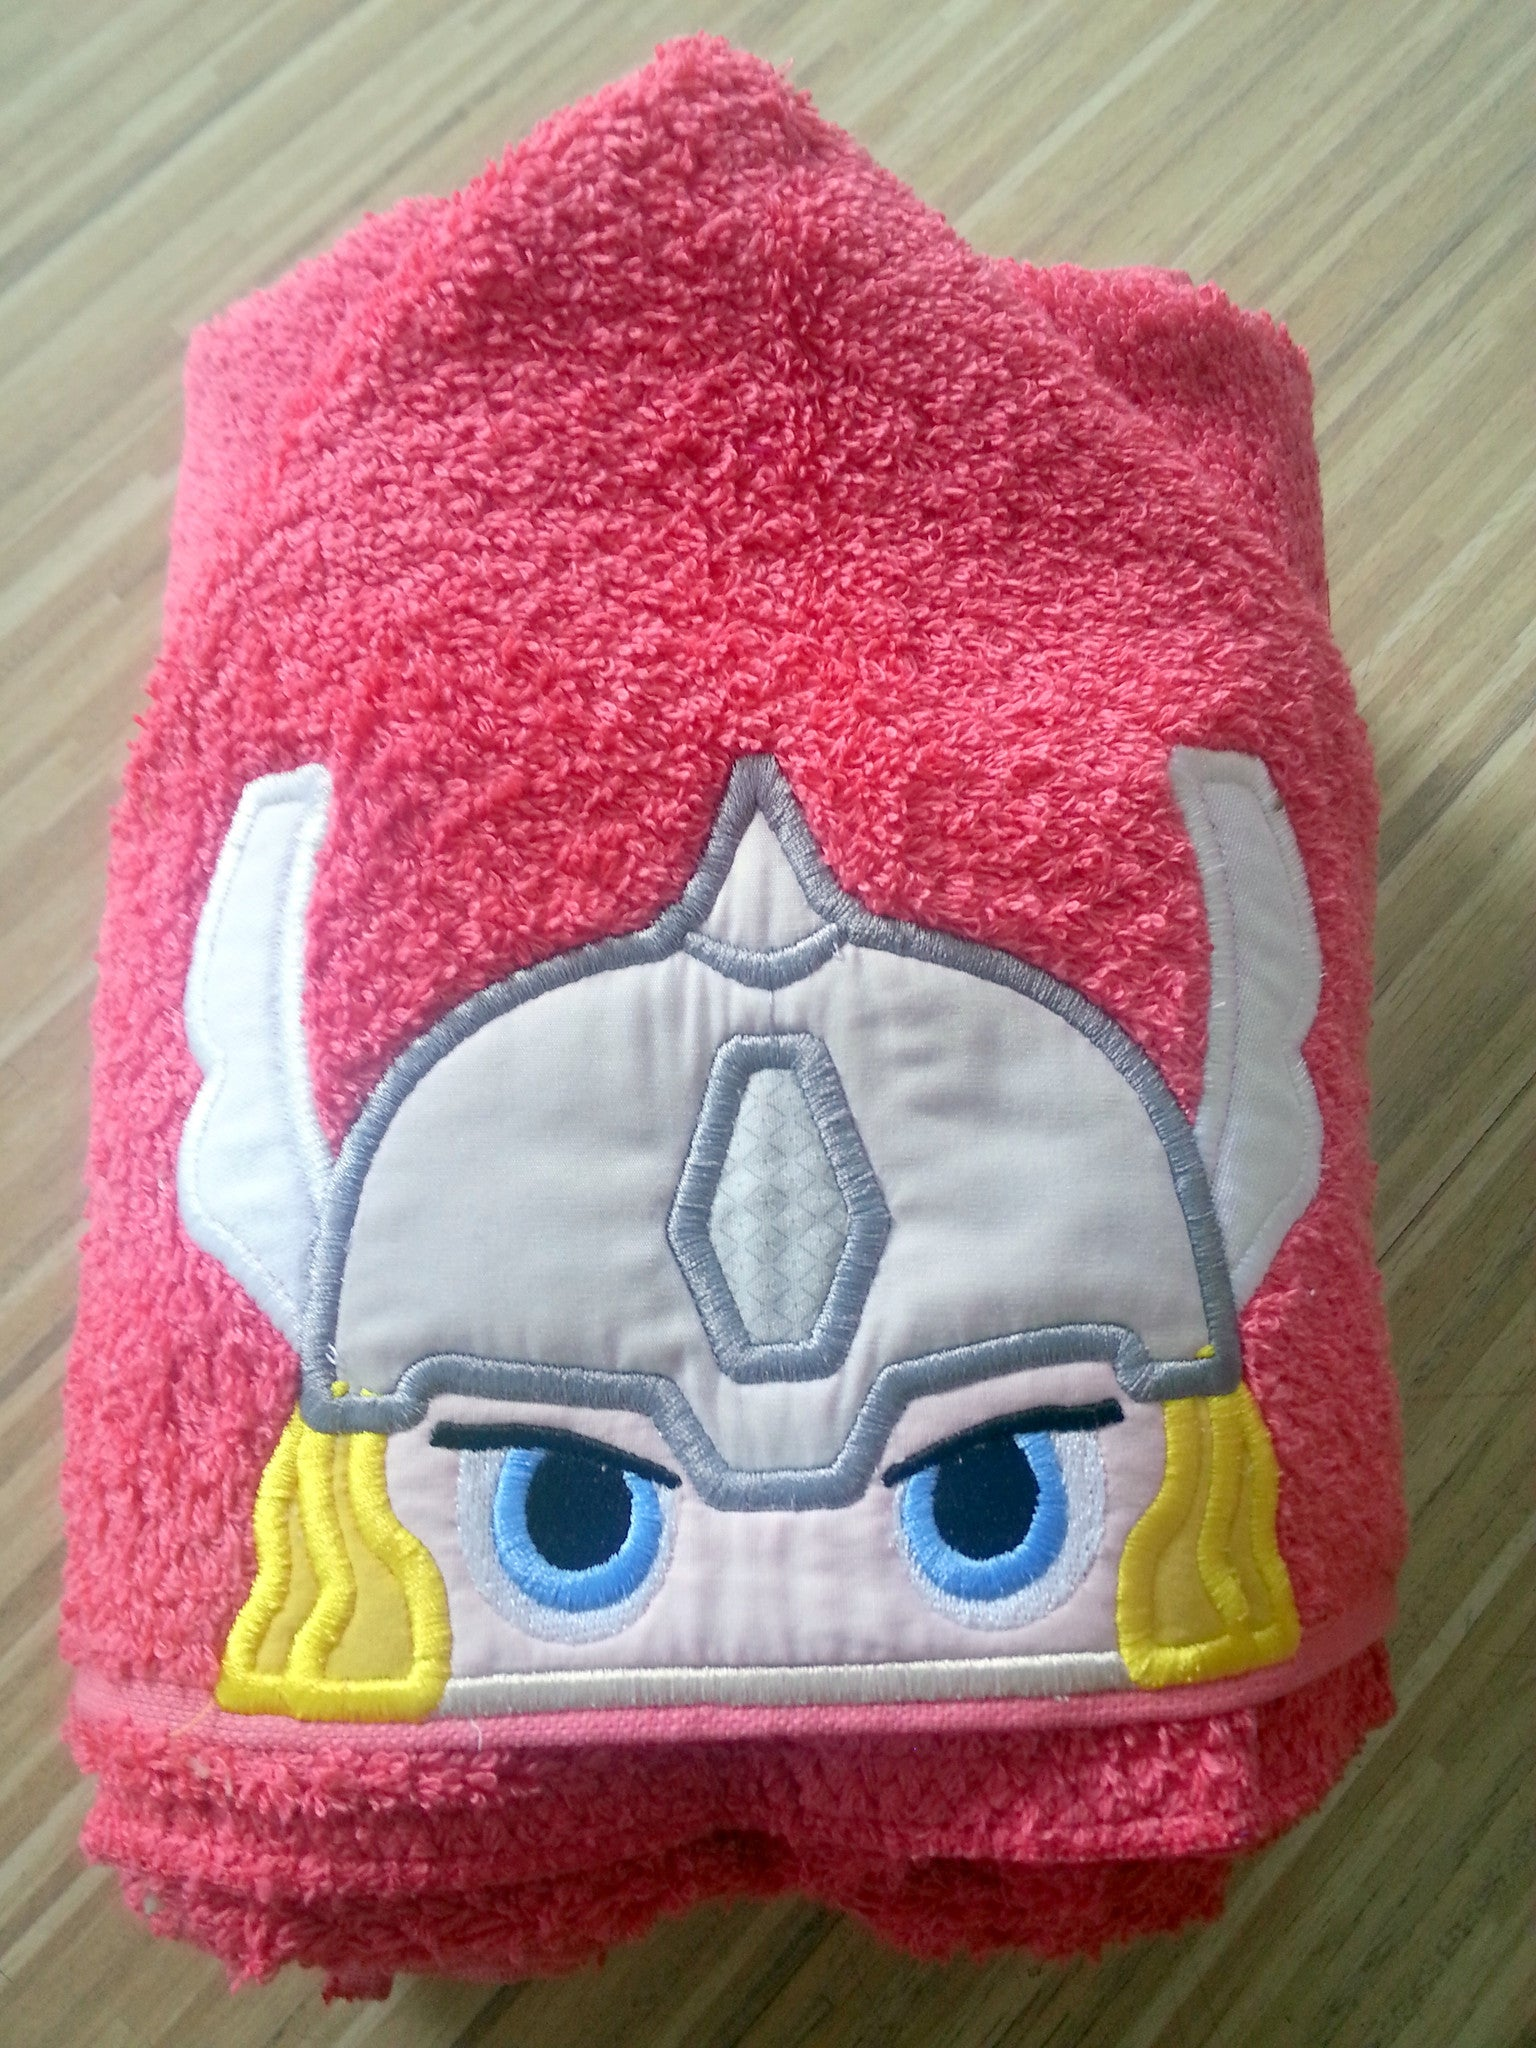 5x7 THOR AVENGER HERO HEAD FOR HOODED TOWEL